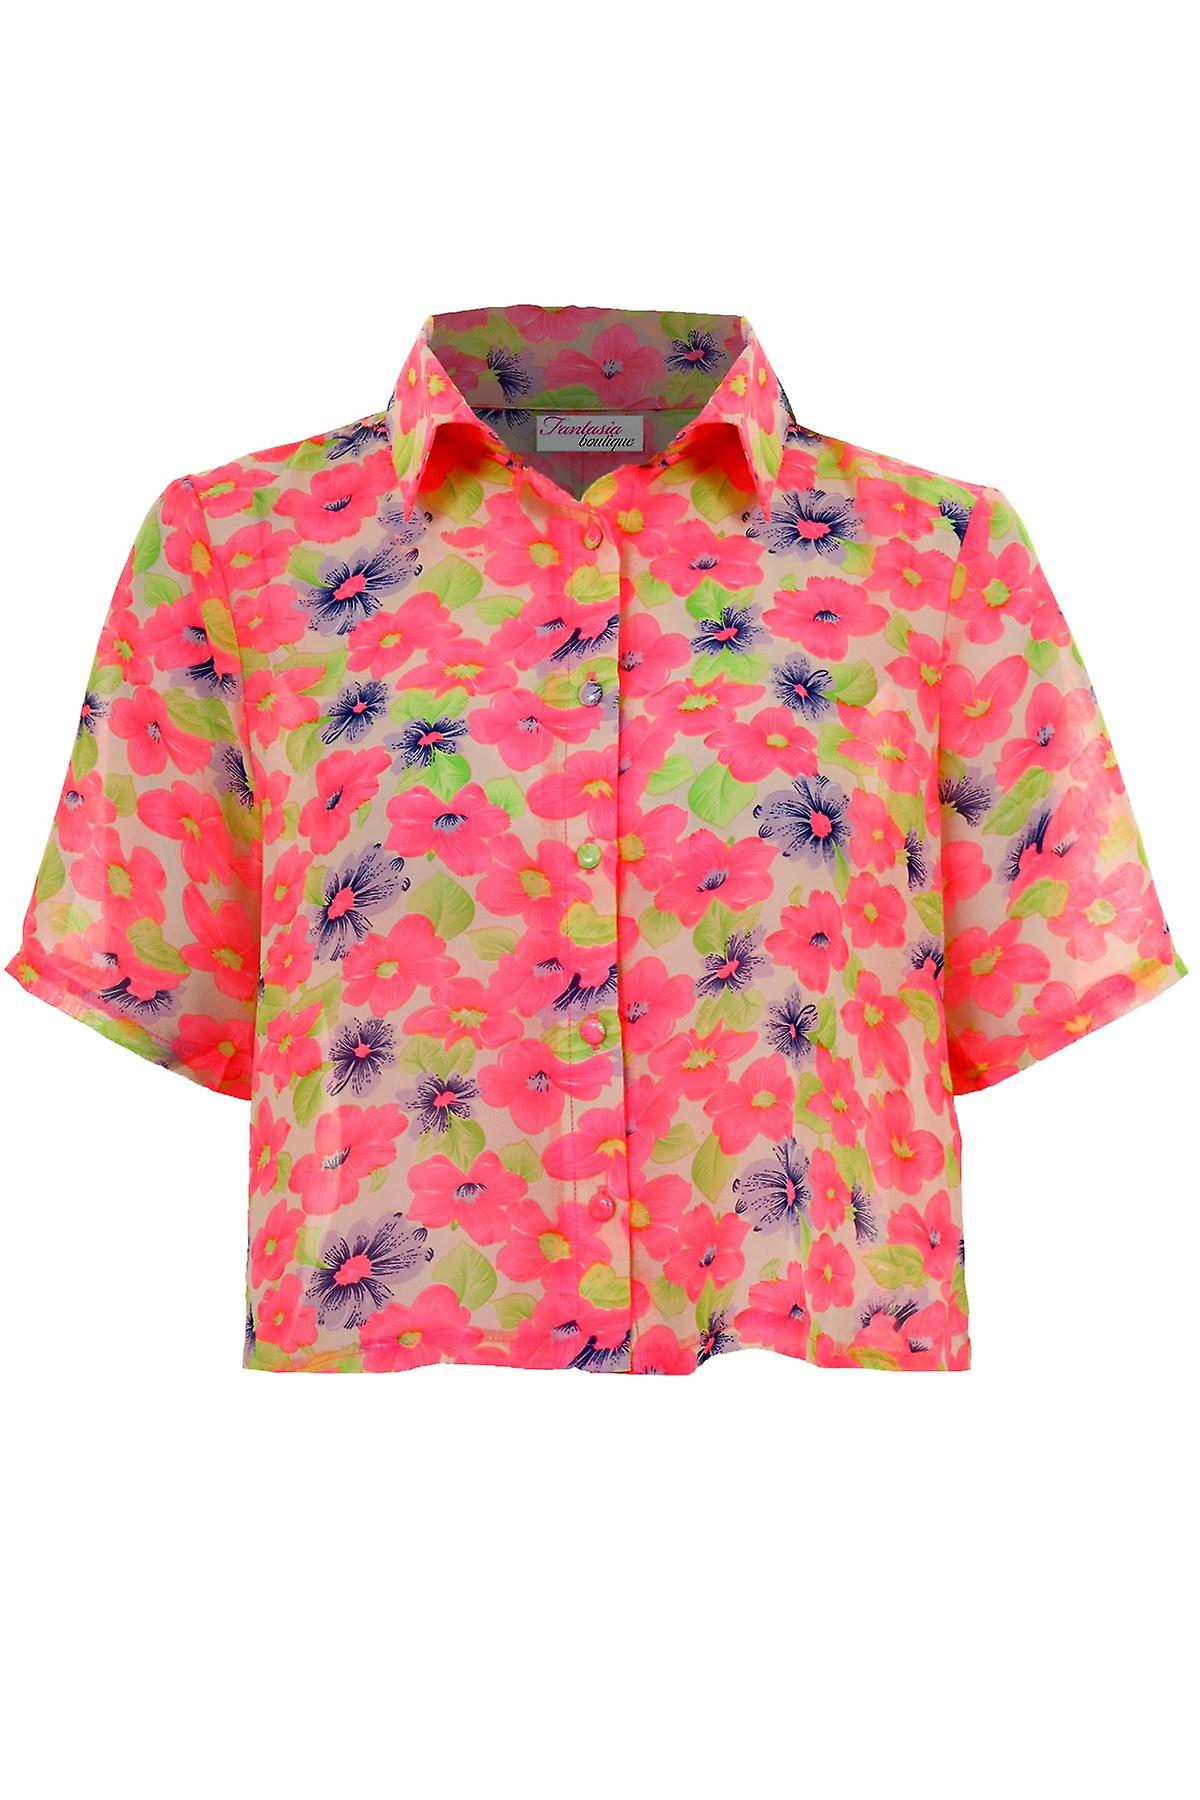 Ladies Short Sleeve Neon Floral Print Chiffon Women's Baggy Crop Blouse Top